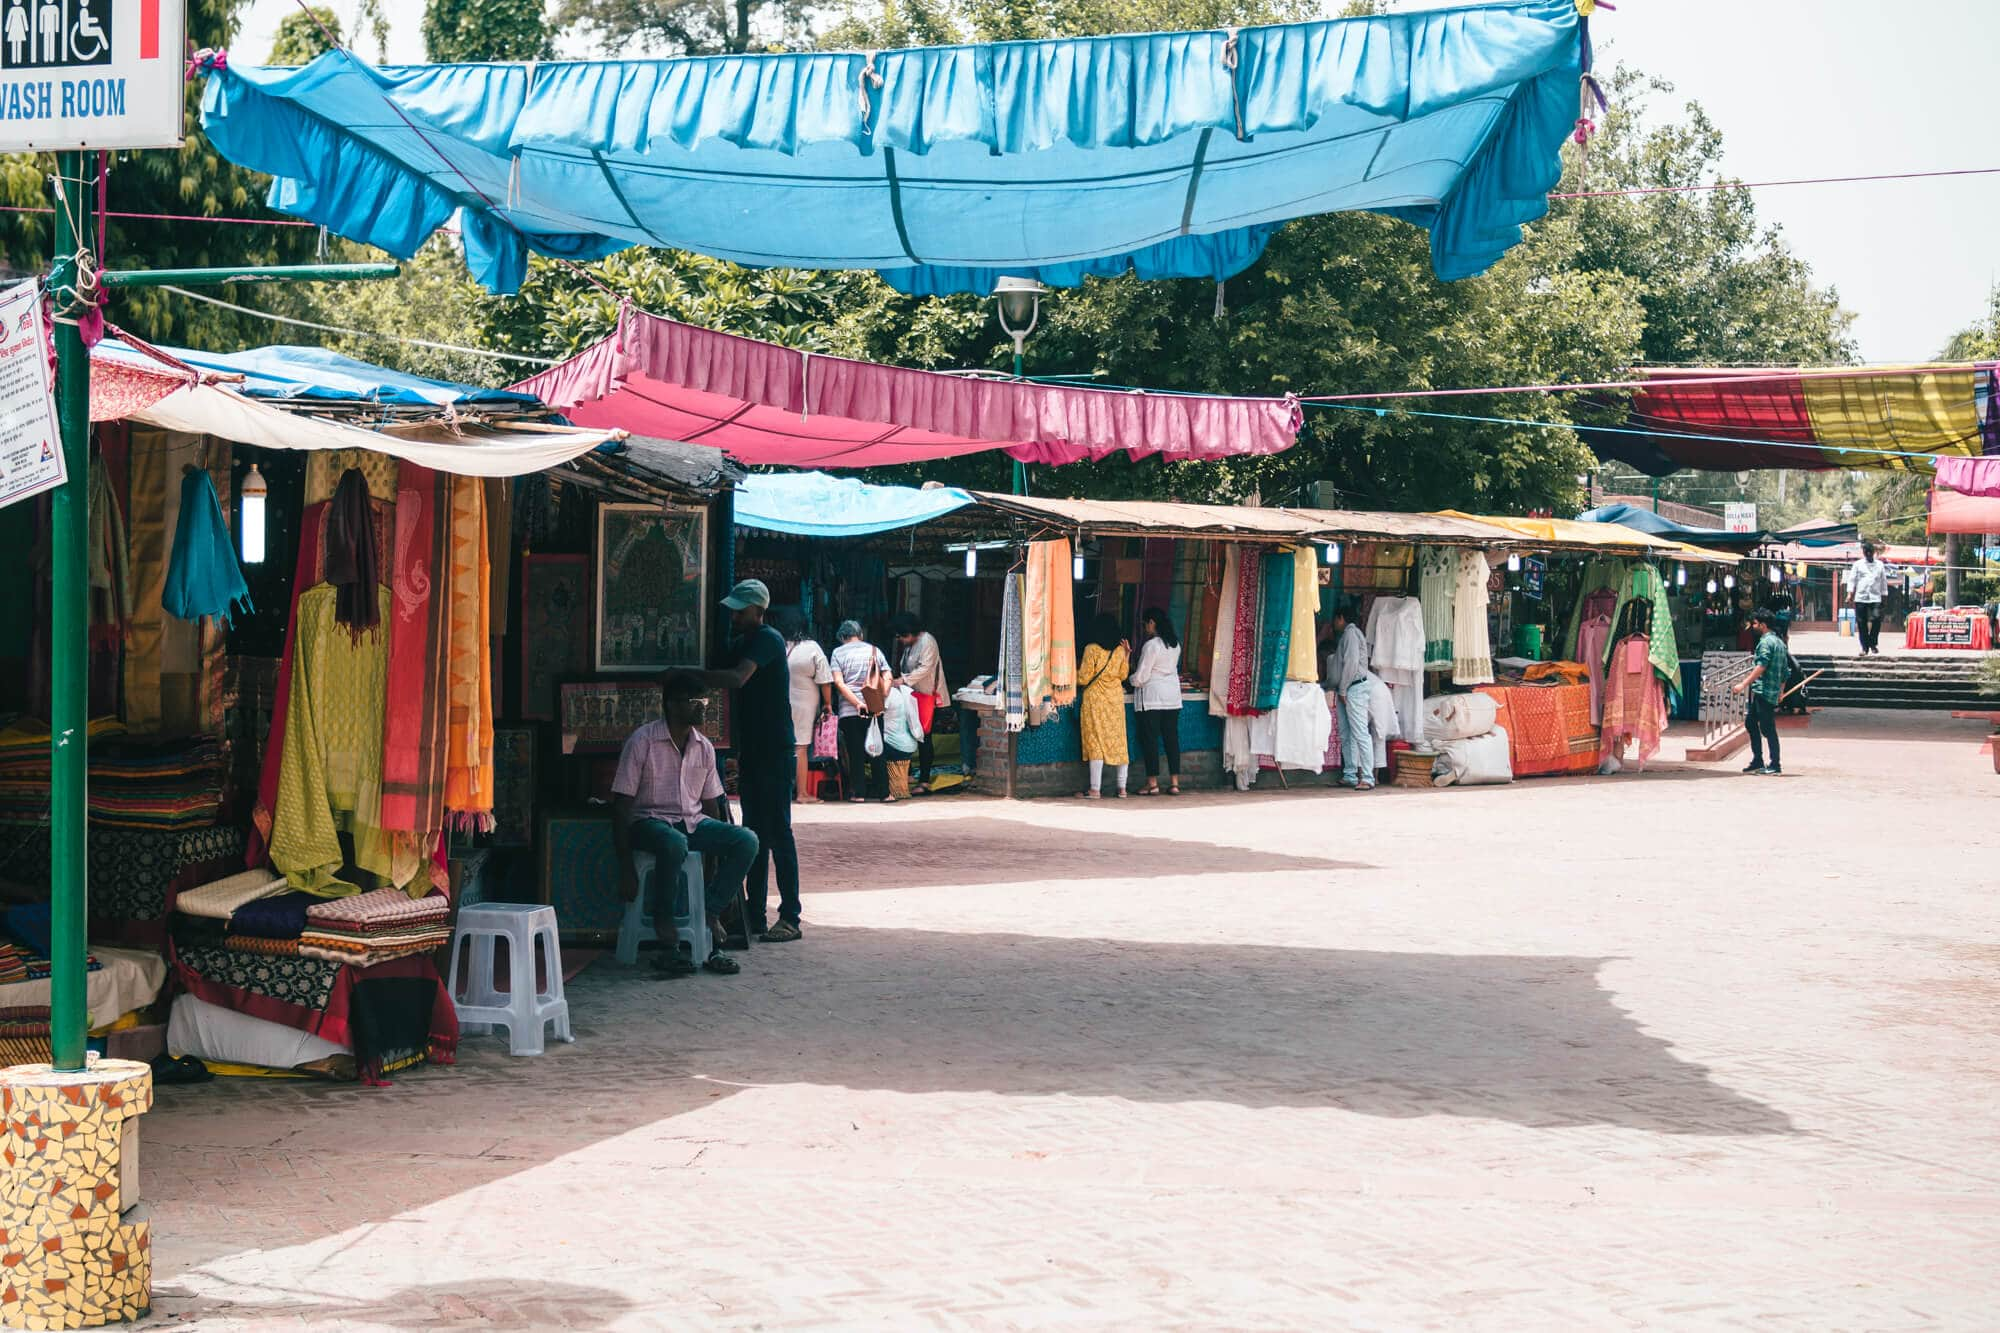 A first timer's guide to Delhi, India - Dilli Haat the best market